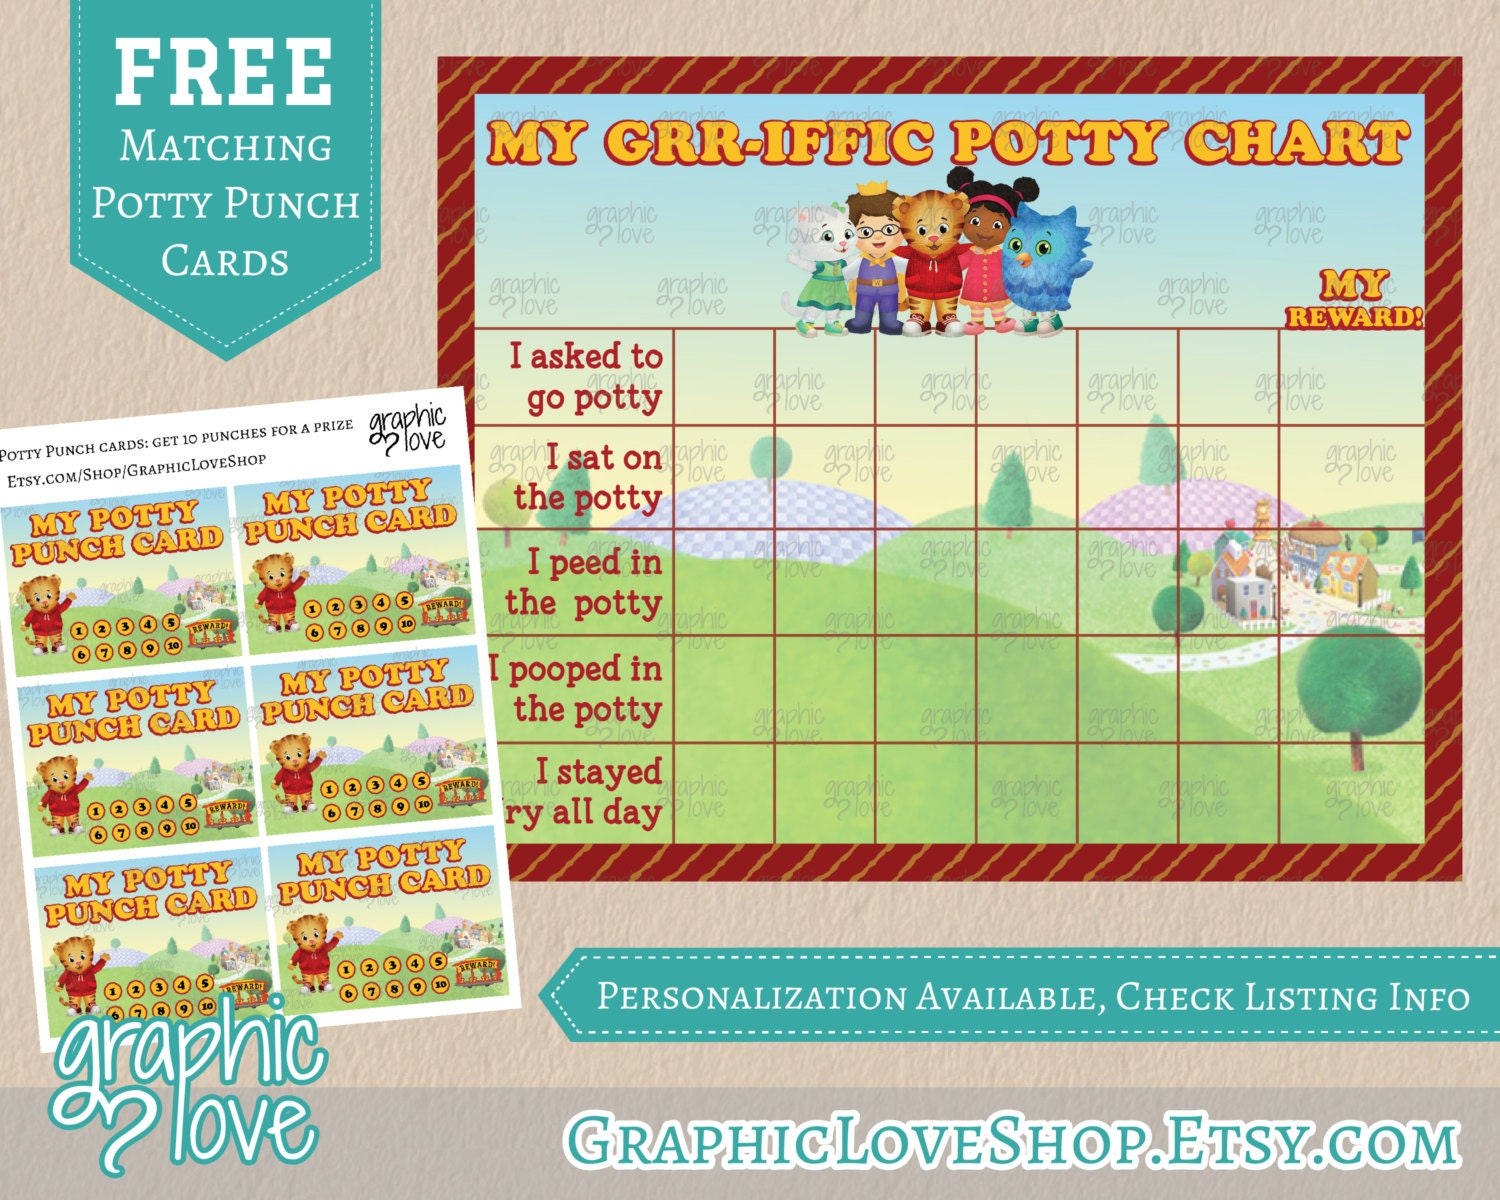 printable daniel tiger grr iffic potty training chart punch printable daniel tiger grr iffic potty training chart punch cards jpg files instant